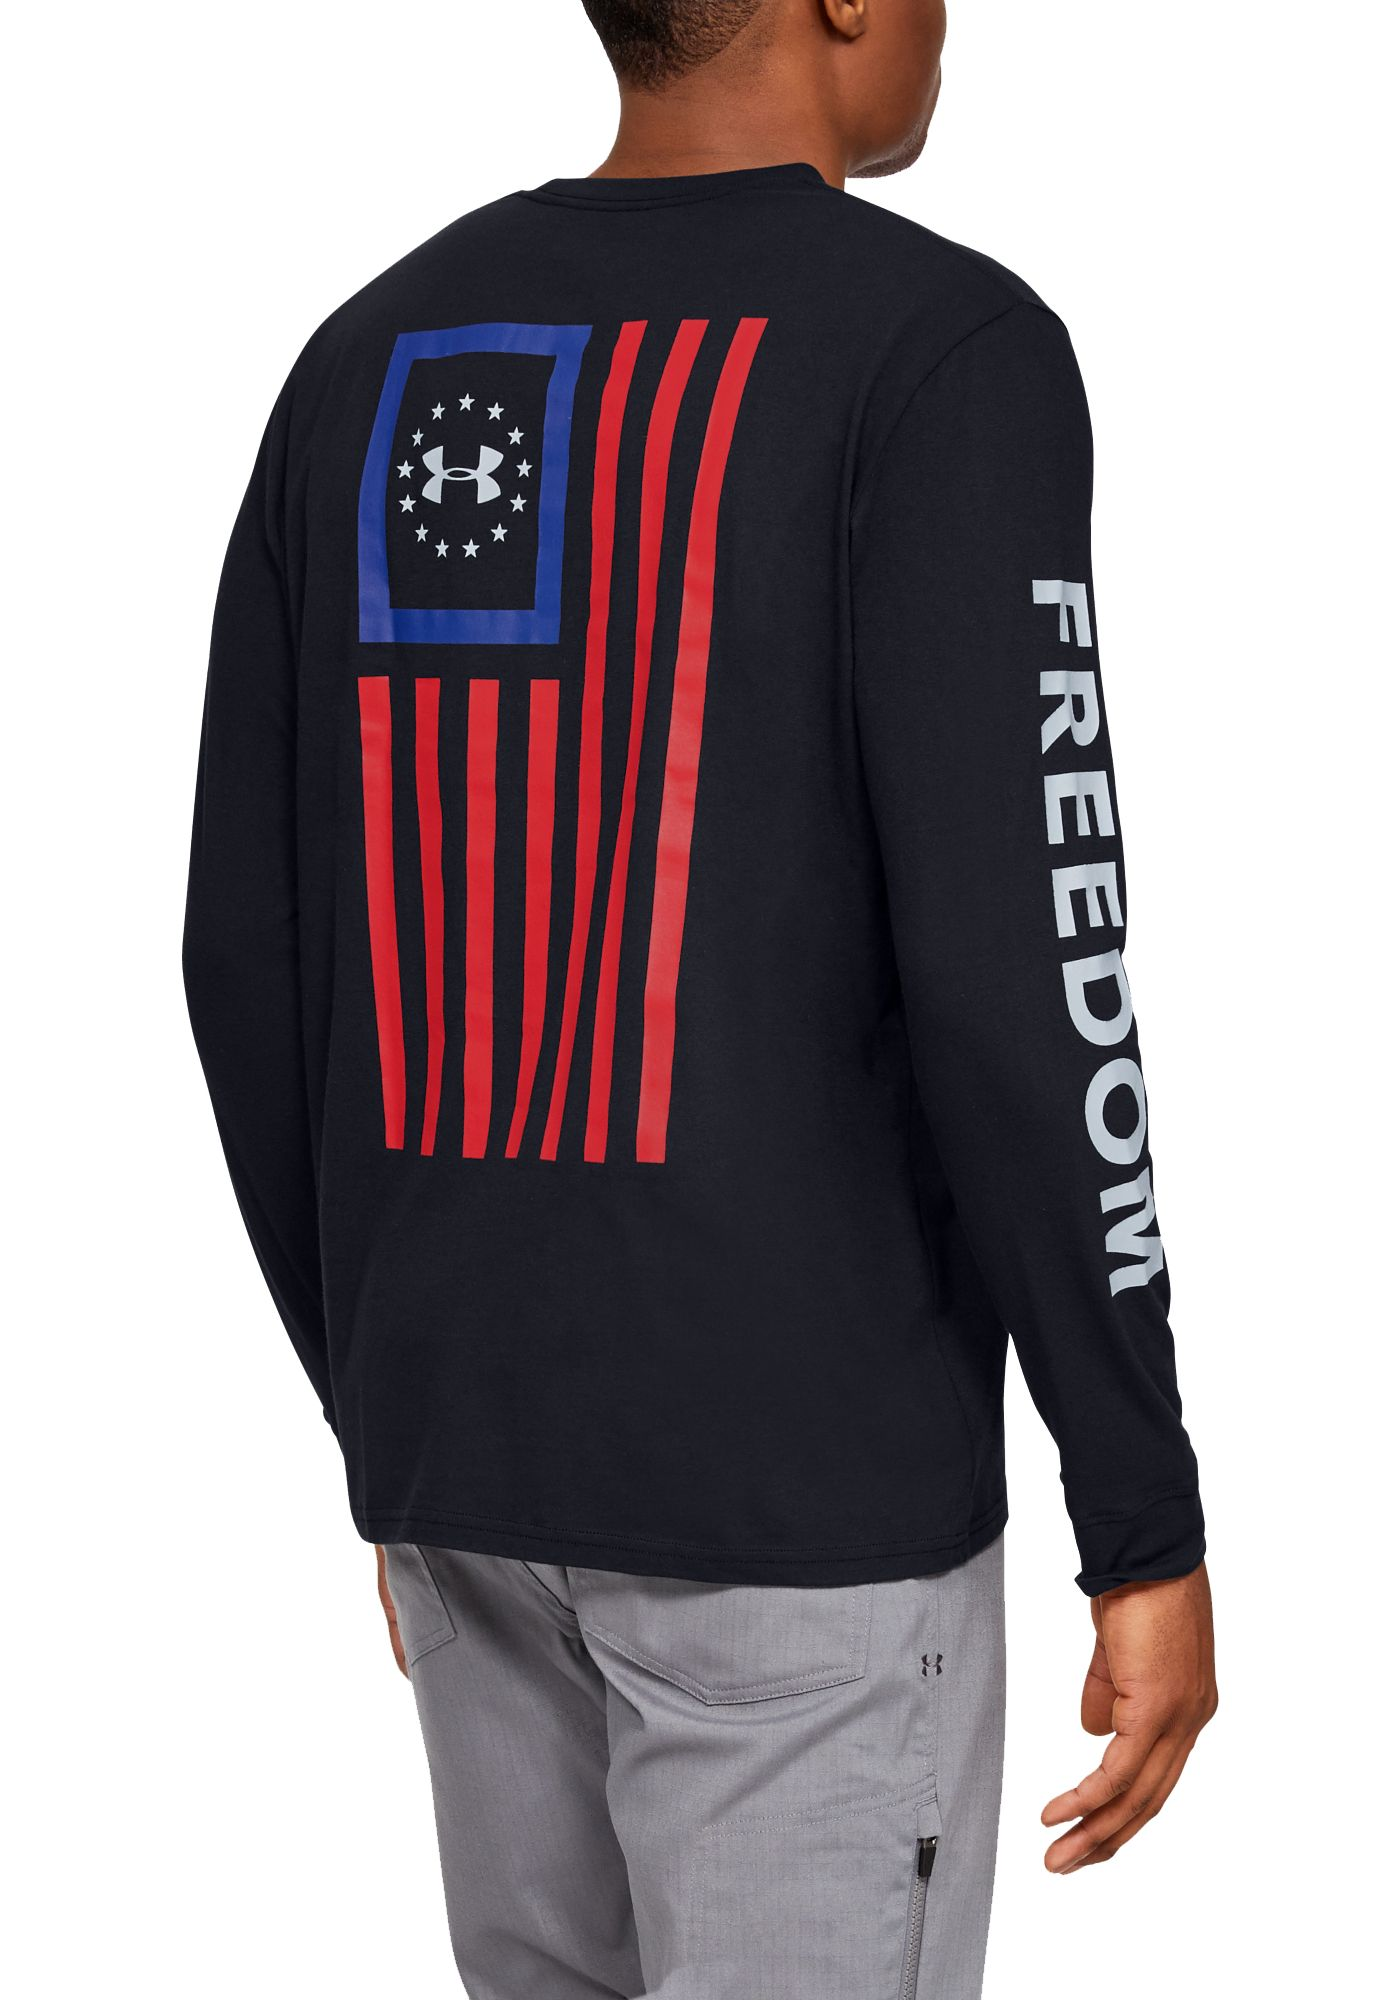 Under Armour Men's Freedom New Flag Long Sleeve T-Shirt